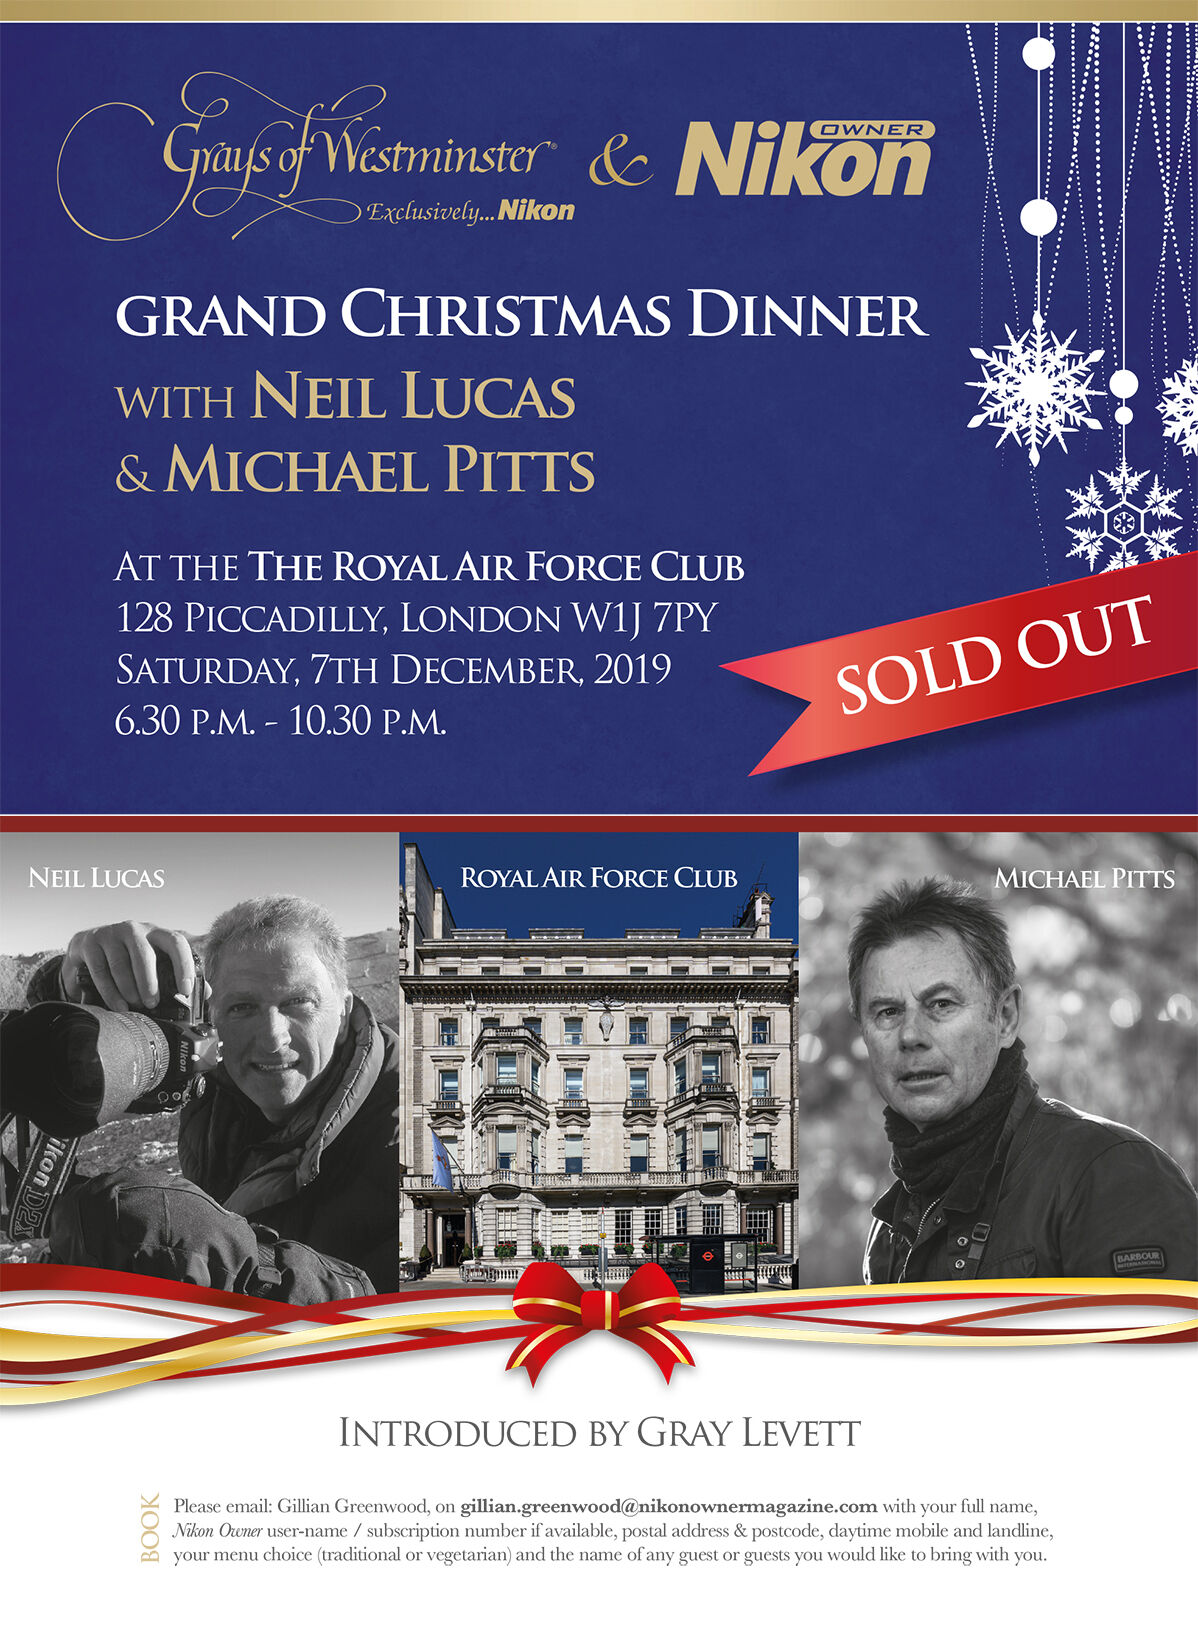 Grand Christmas Dinner with Neil Lucas & Michael Pitts